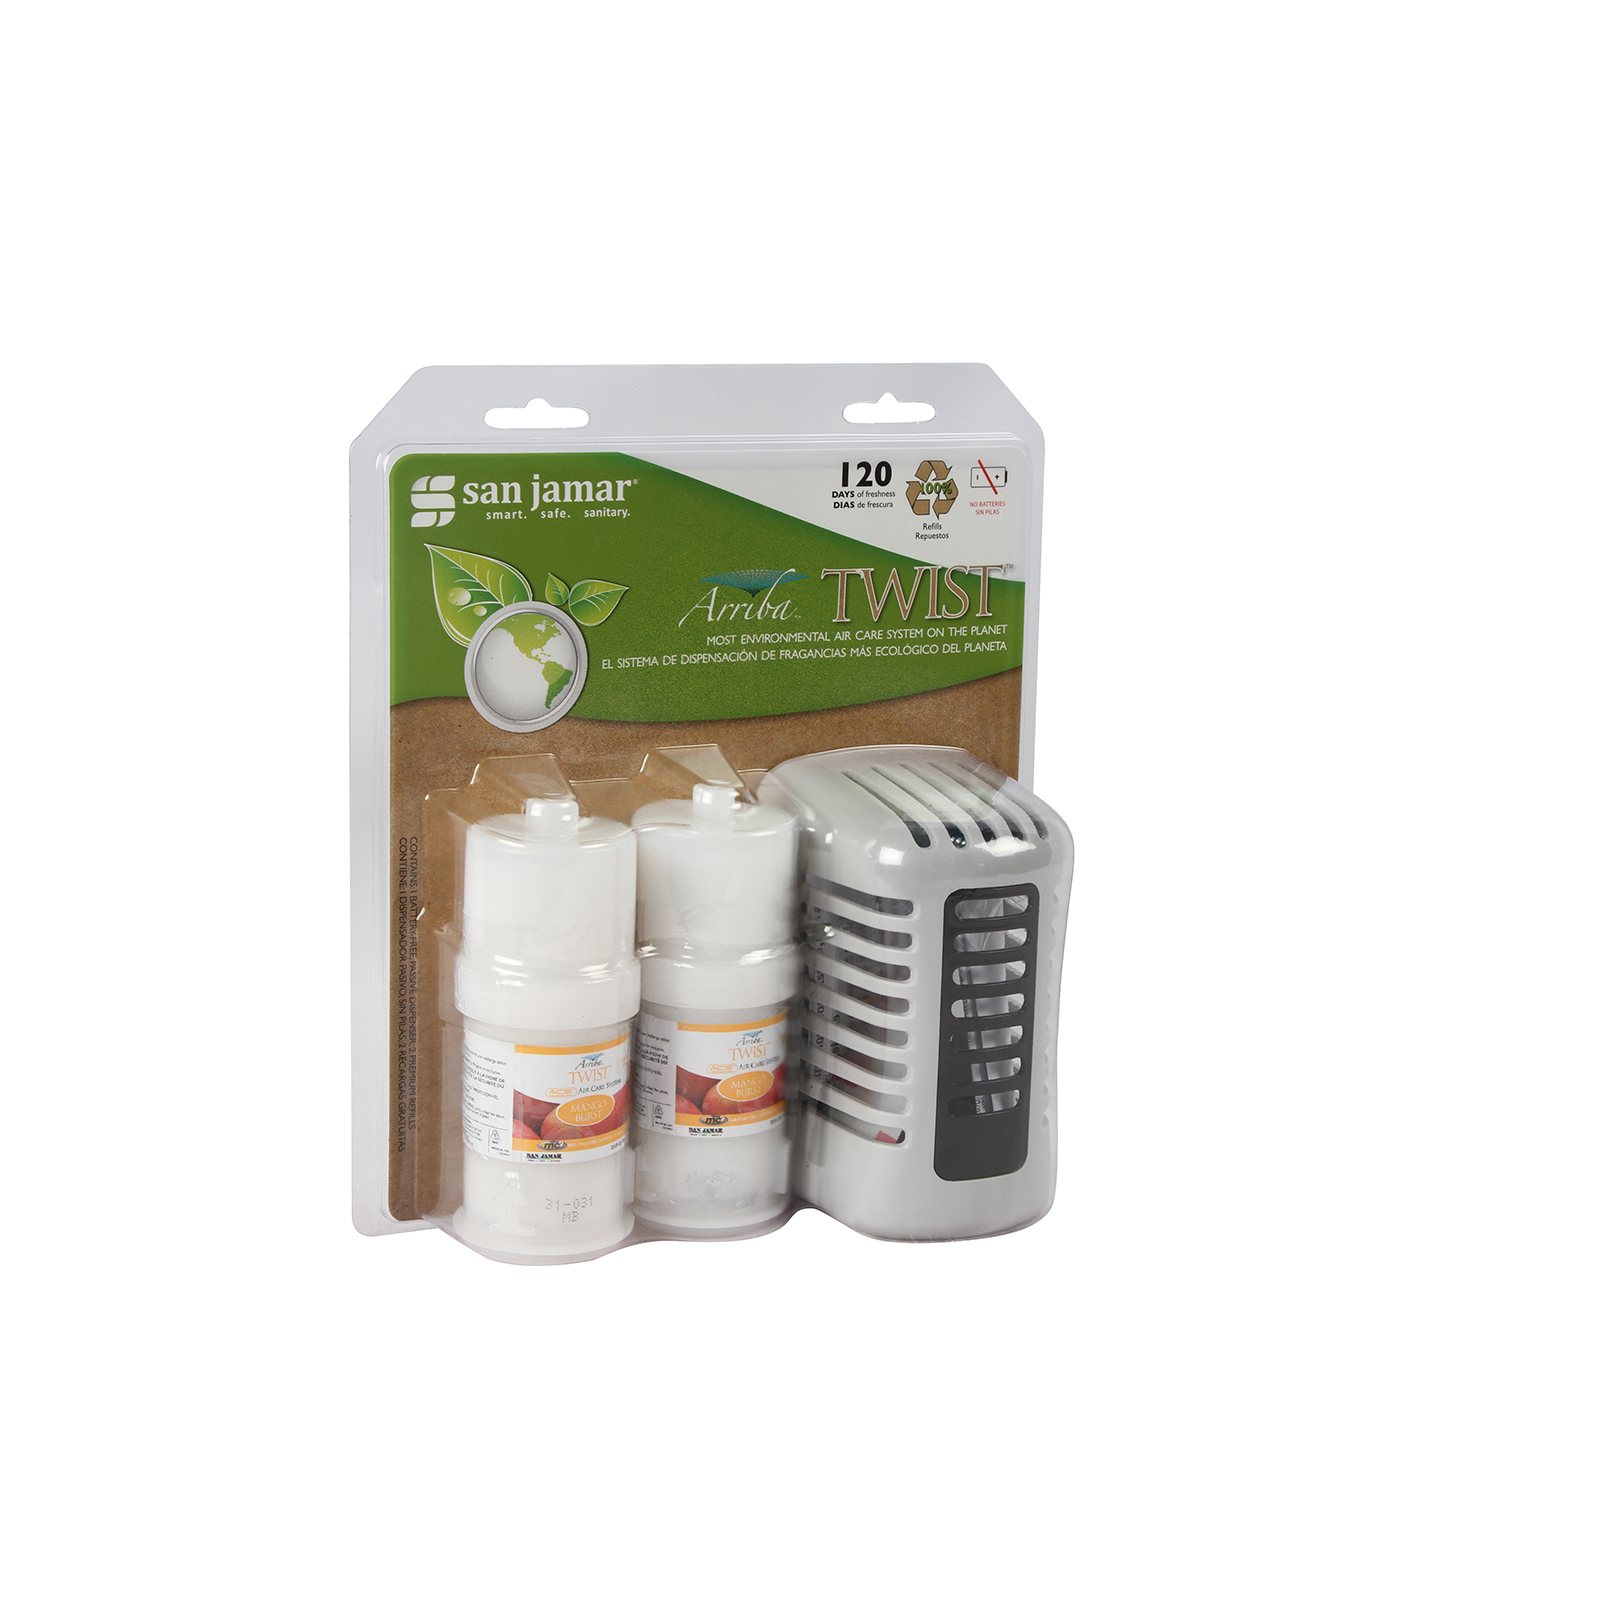 San Jamar WP1202MB air freshener dispenser